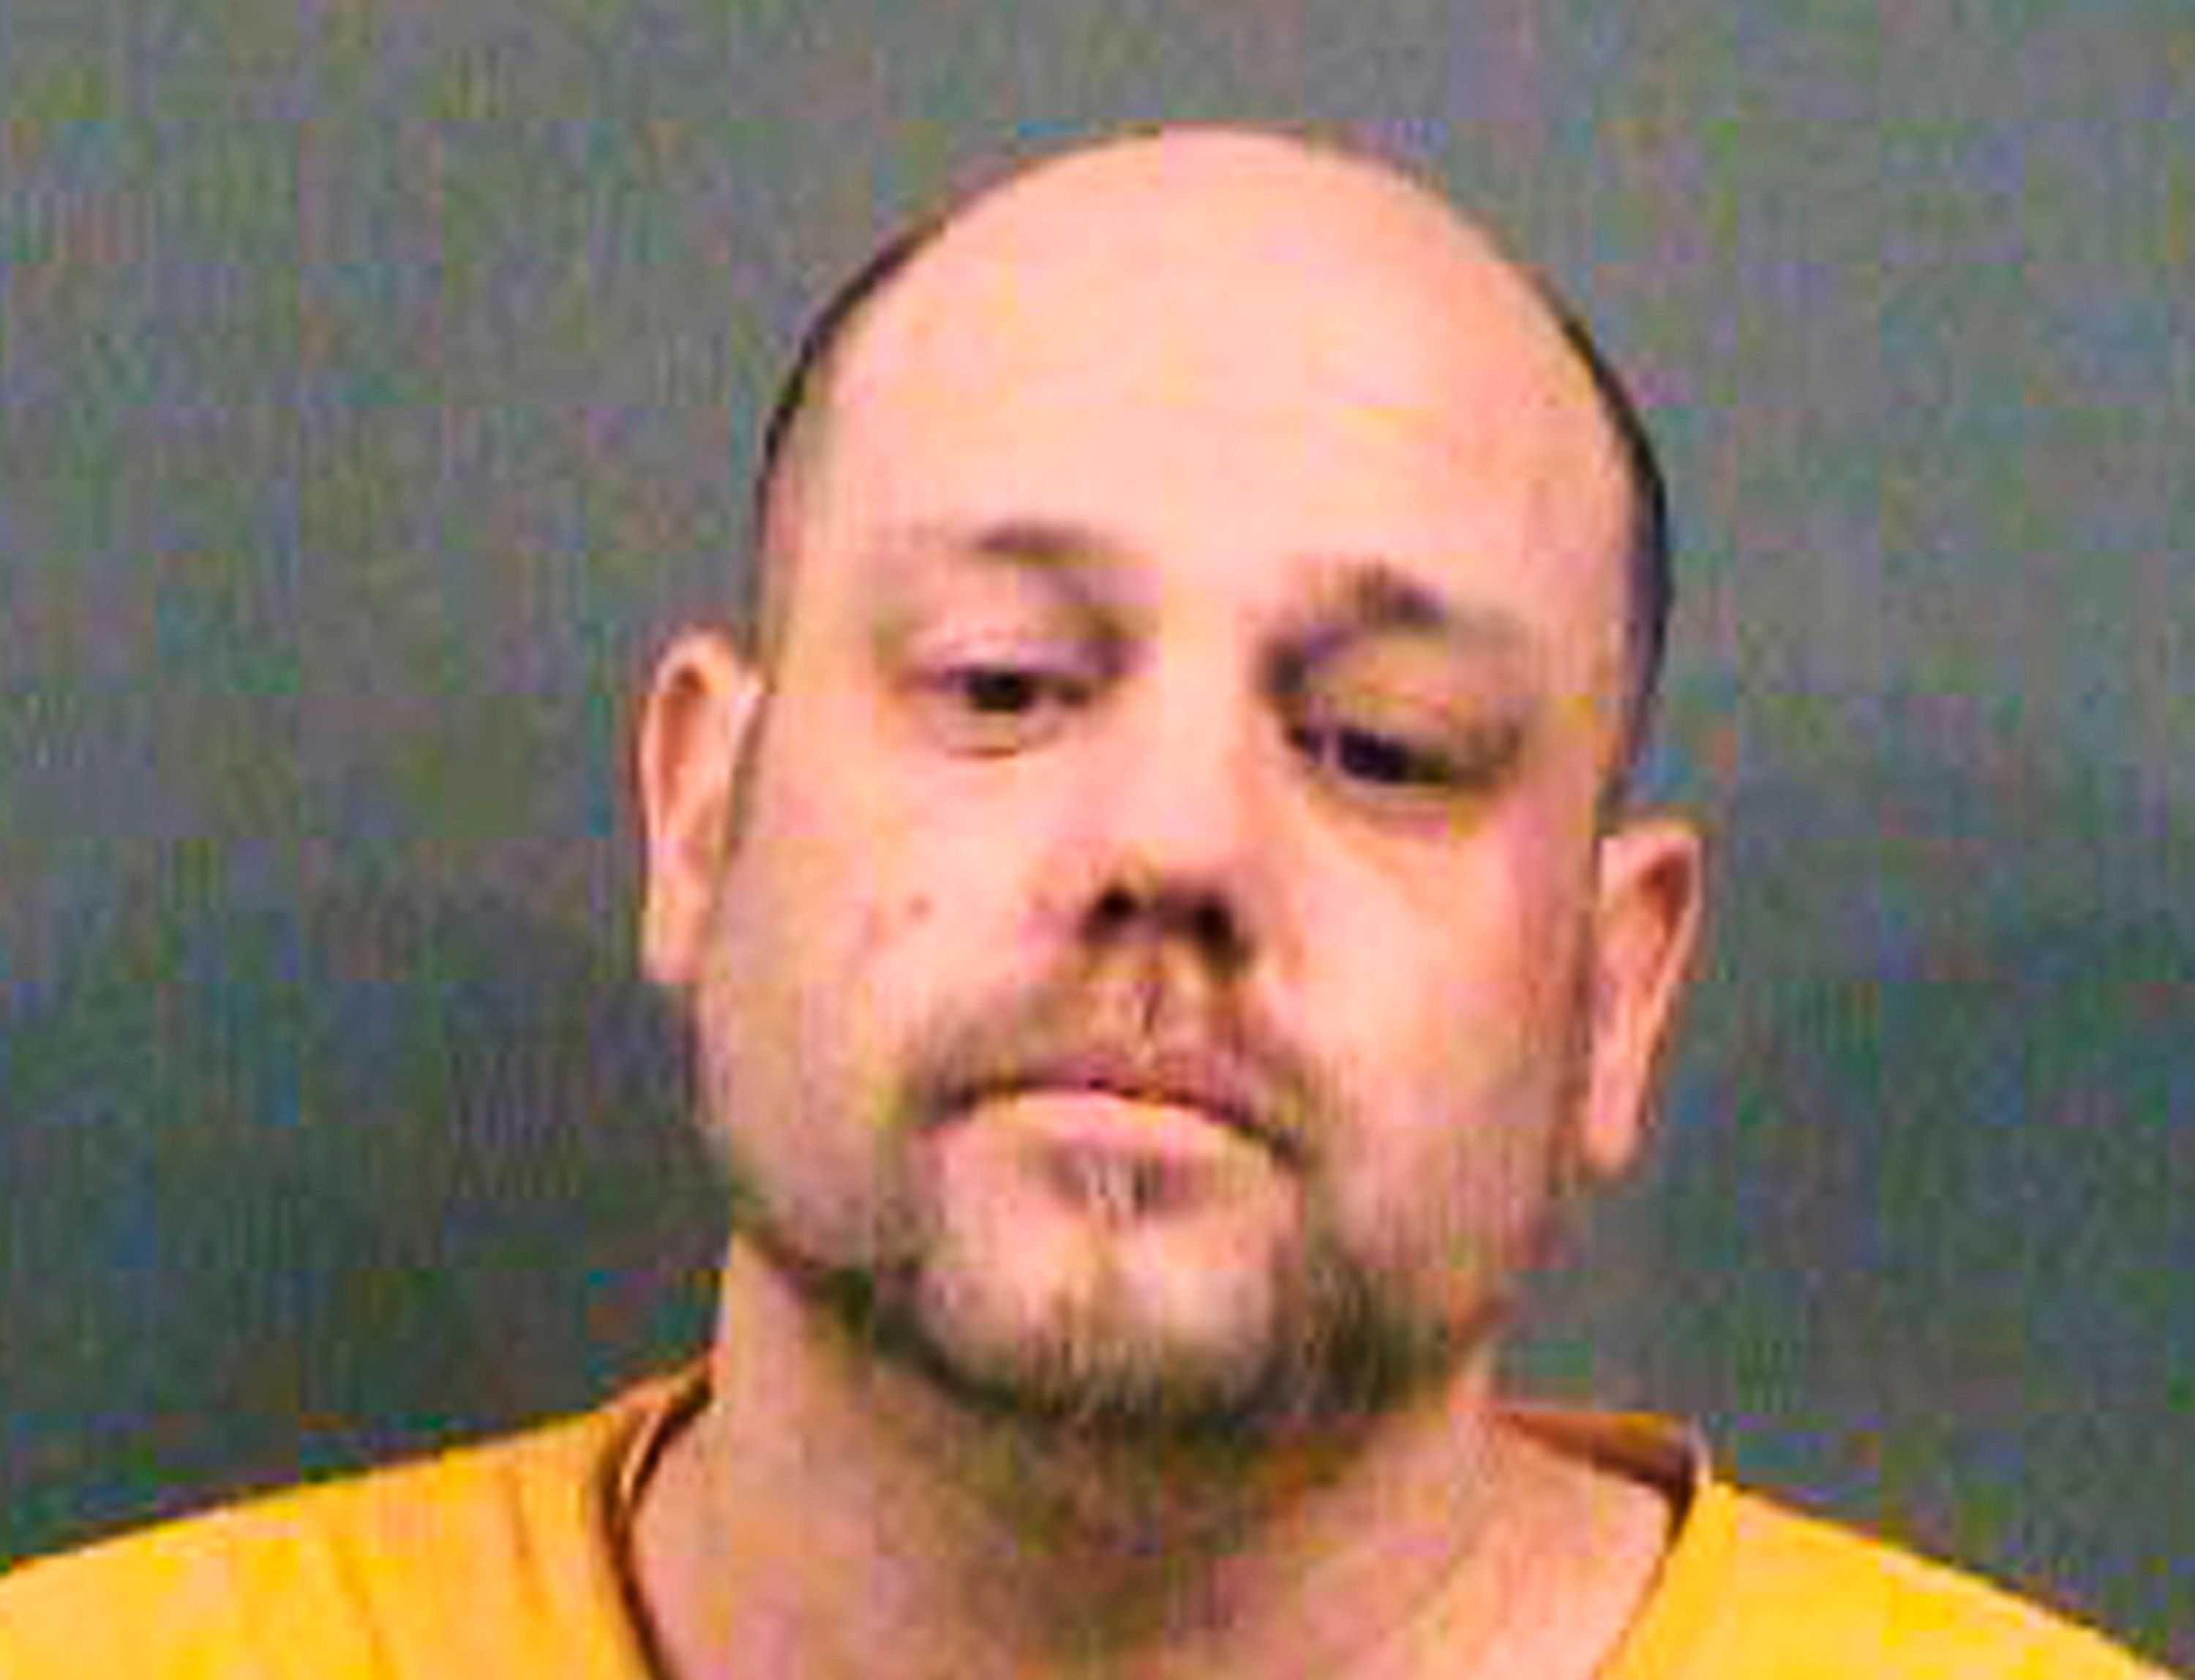 <p> FILE - This file photo provided by the Sedgwick County Sheriff's Office in Wichita, Kan., shows Stephen Bodine, of Wichita, who was convicted Wednesday, Oct. 24, 2018, of first-degree murder in the May 2017 killing of a 3-year-old Evan Brewer whose body was found encased in concrete in the laundry room of his home four months after his death. (Sedgwick County Sheriff's Office via AP, File) </p>